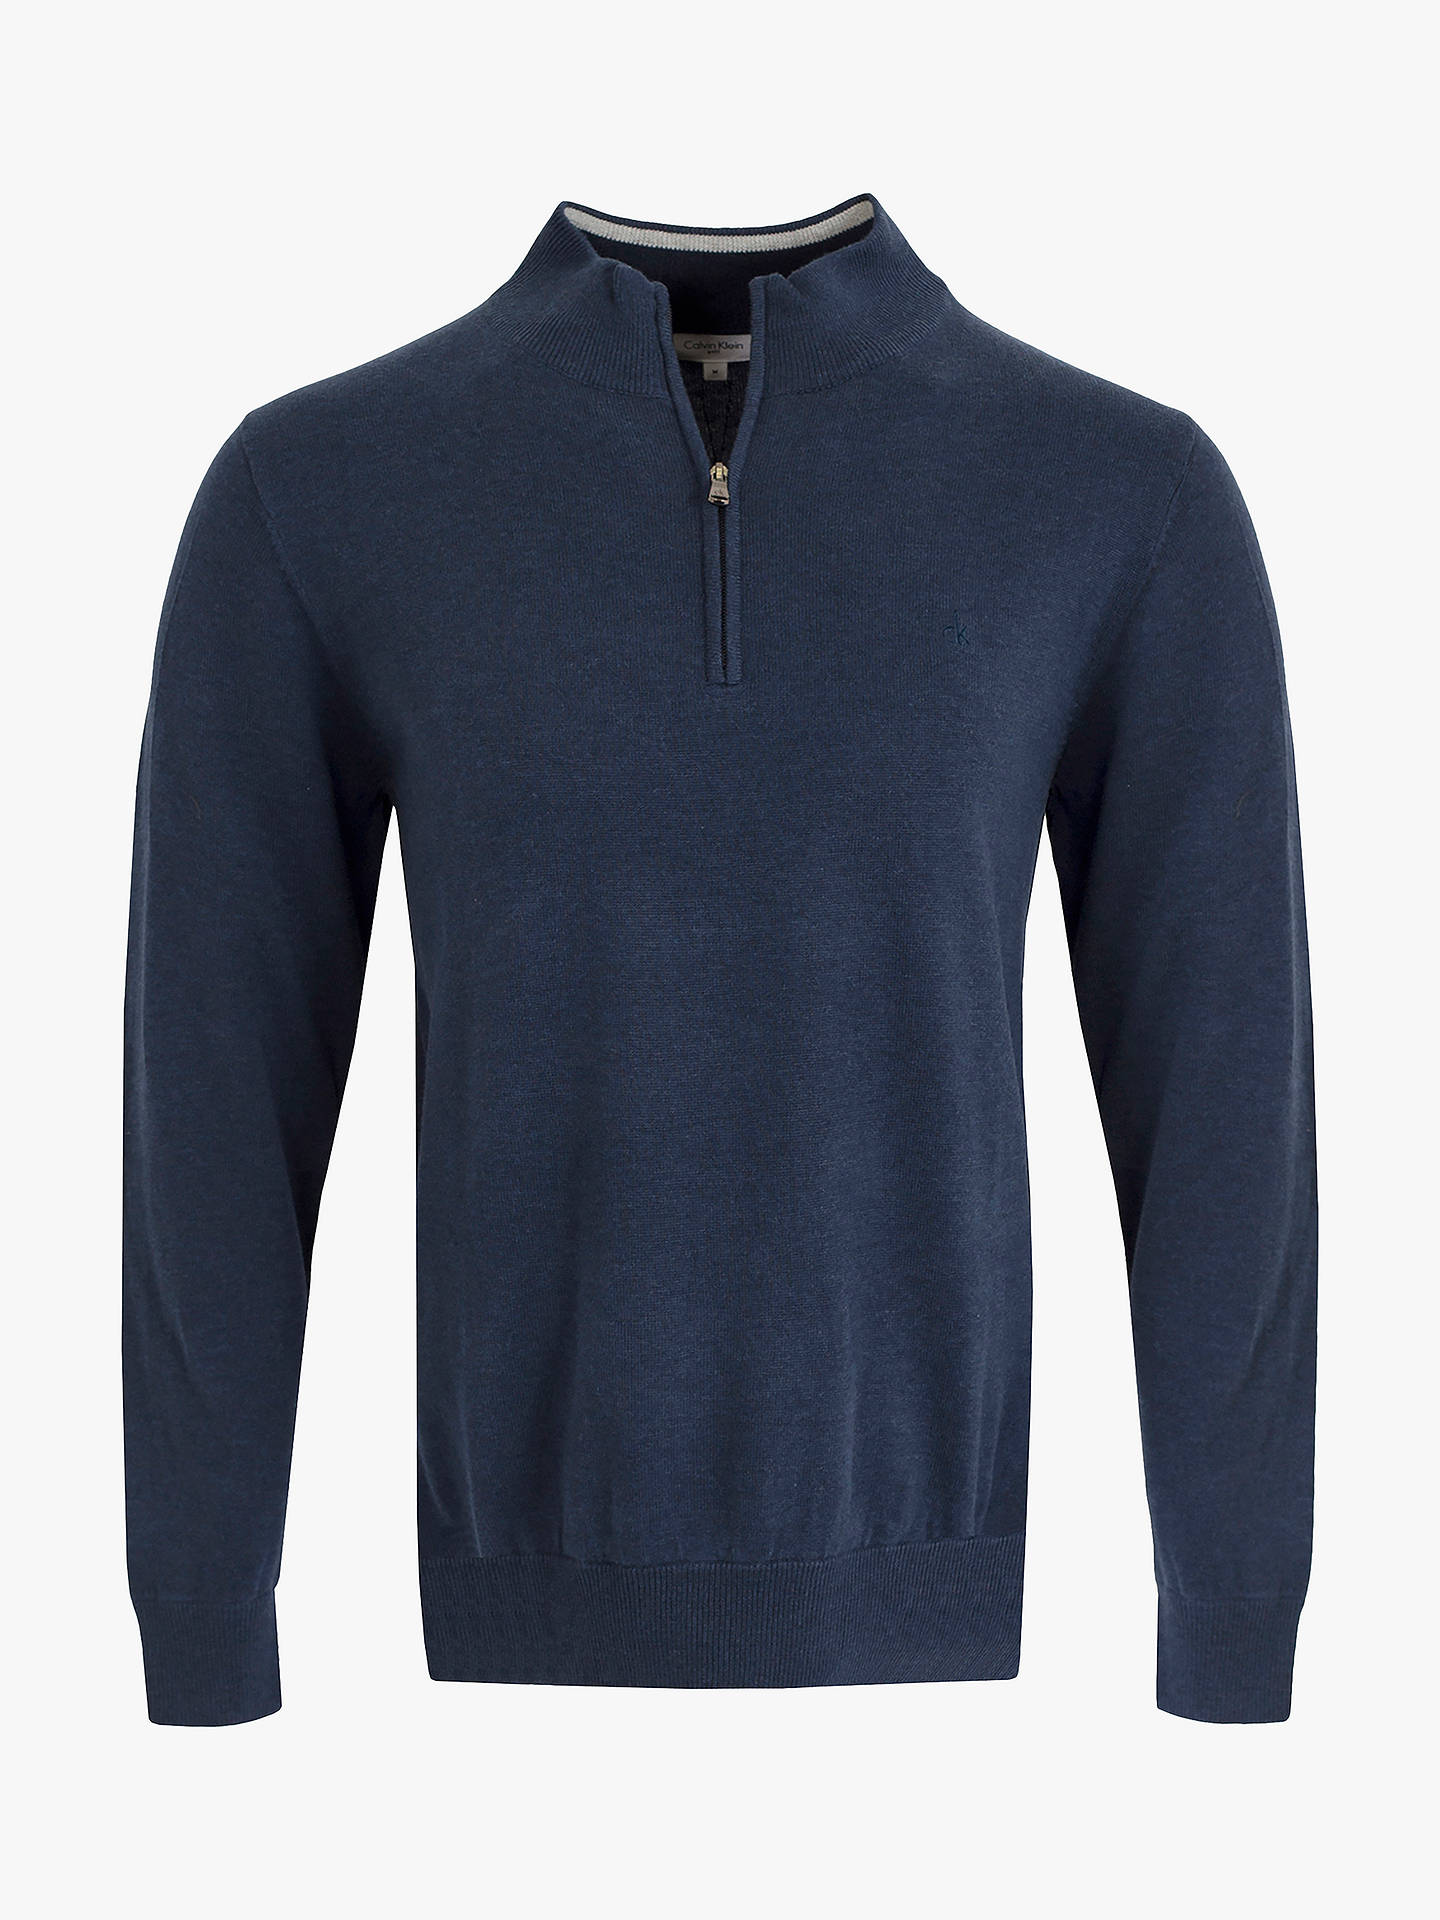 BuyCalvin Klein Golf Heather Half-Zip Sweatshirt, Denim, S Online at johnlewis.com